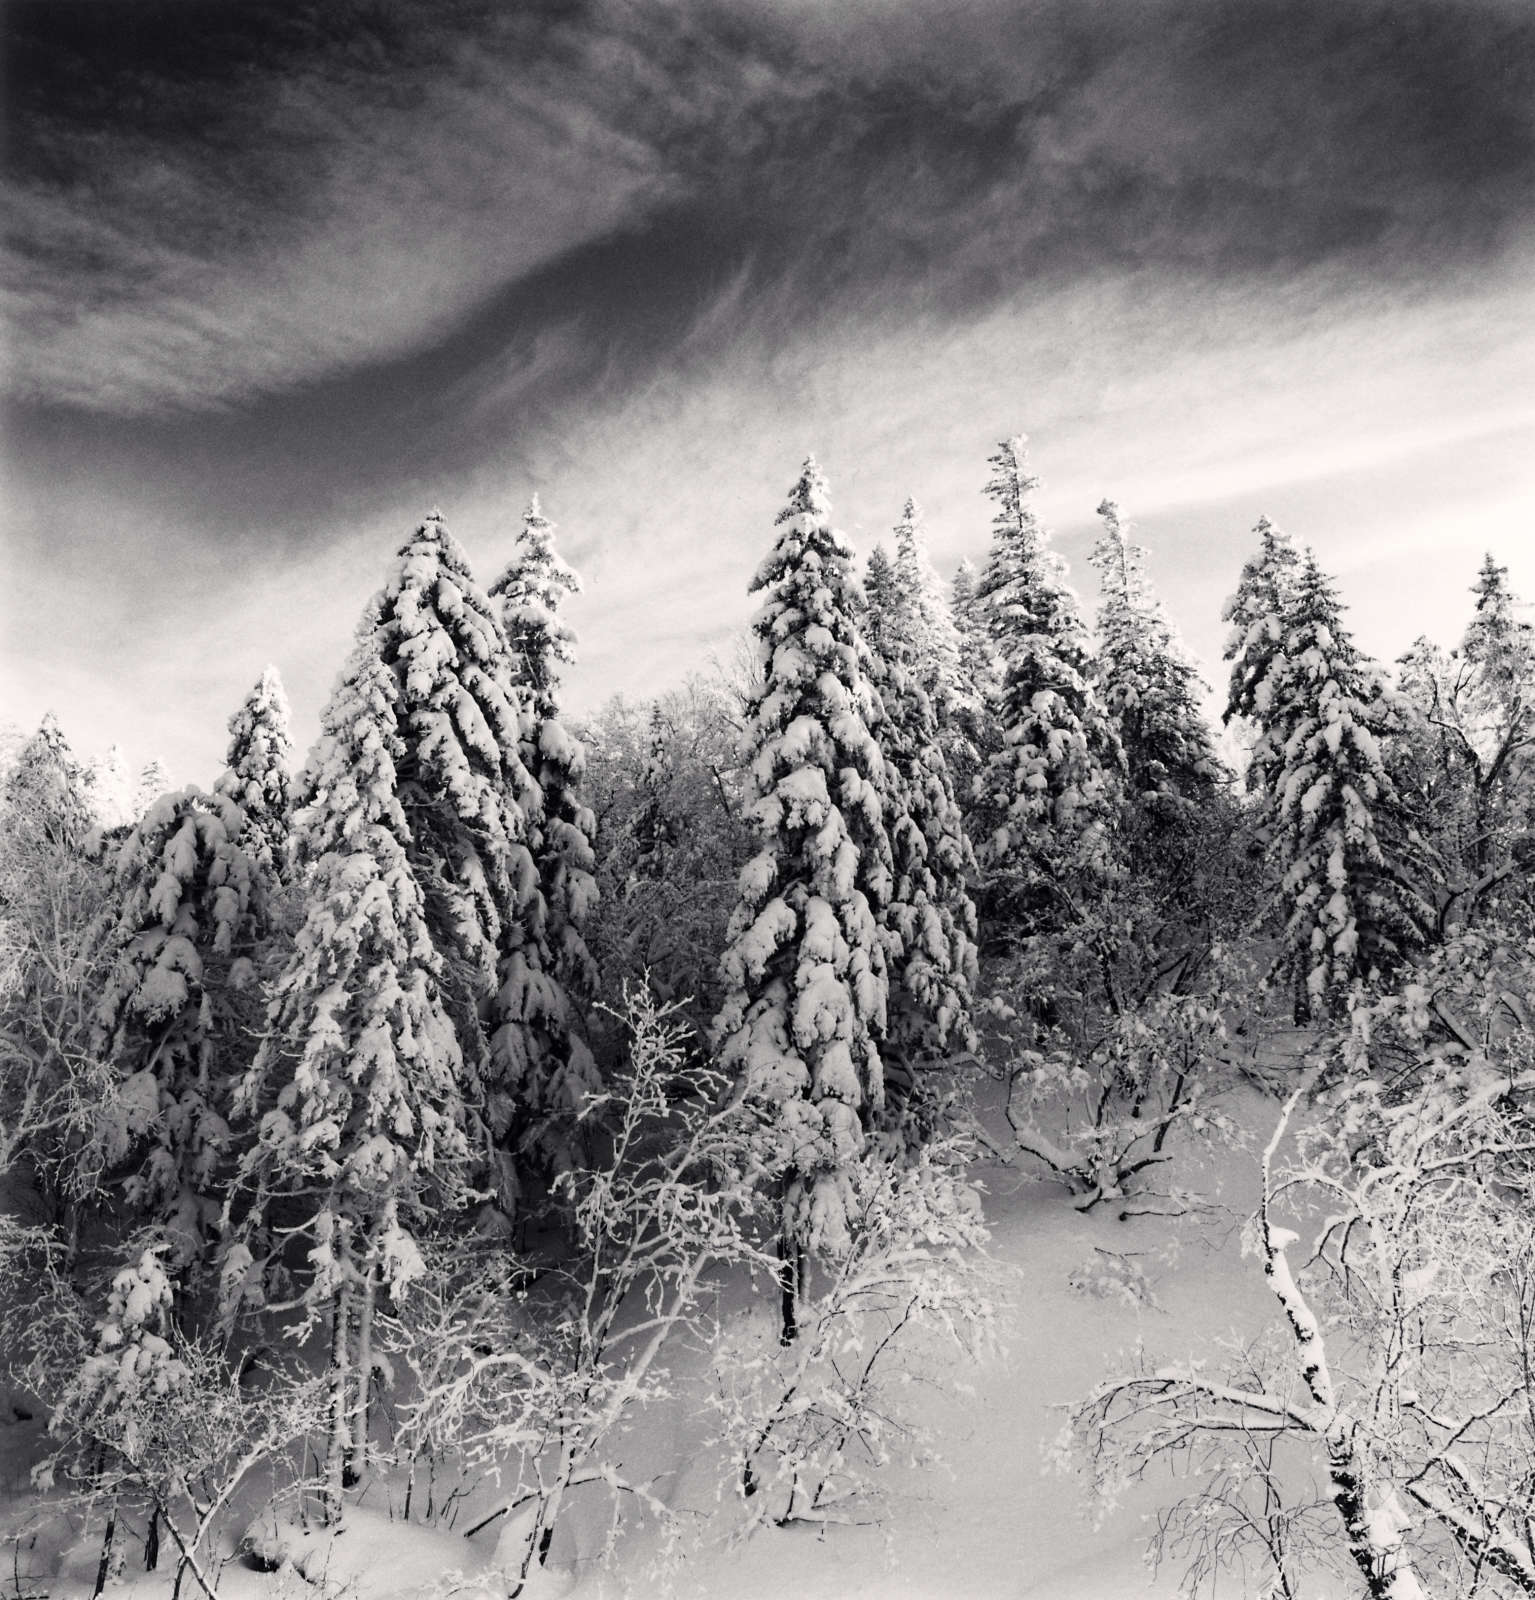 Snow Clad Trees, Heilongjiang, China, 2012